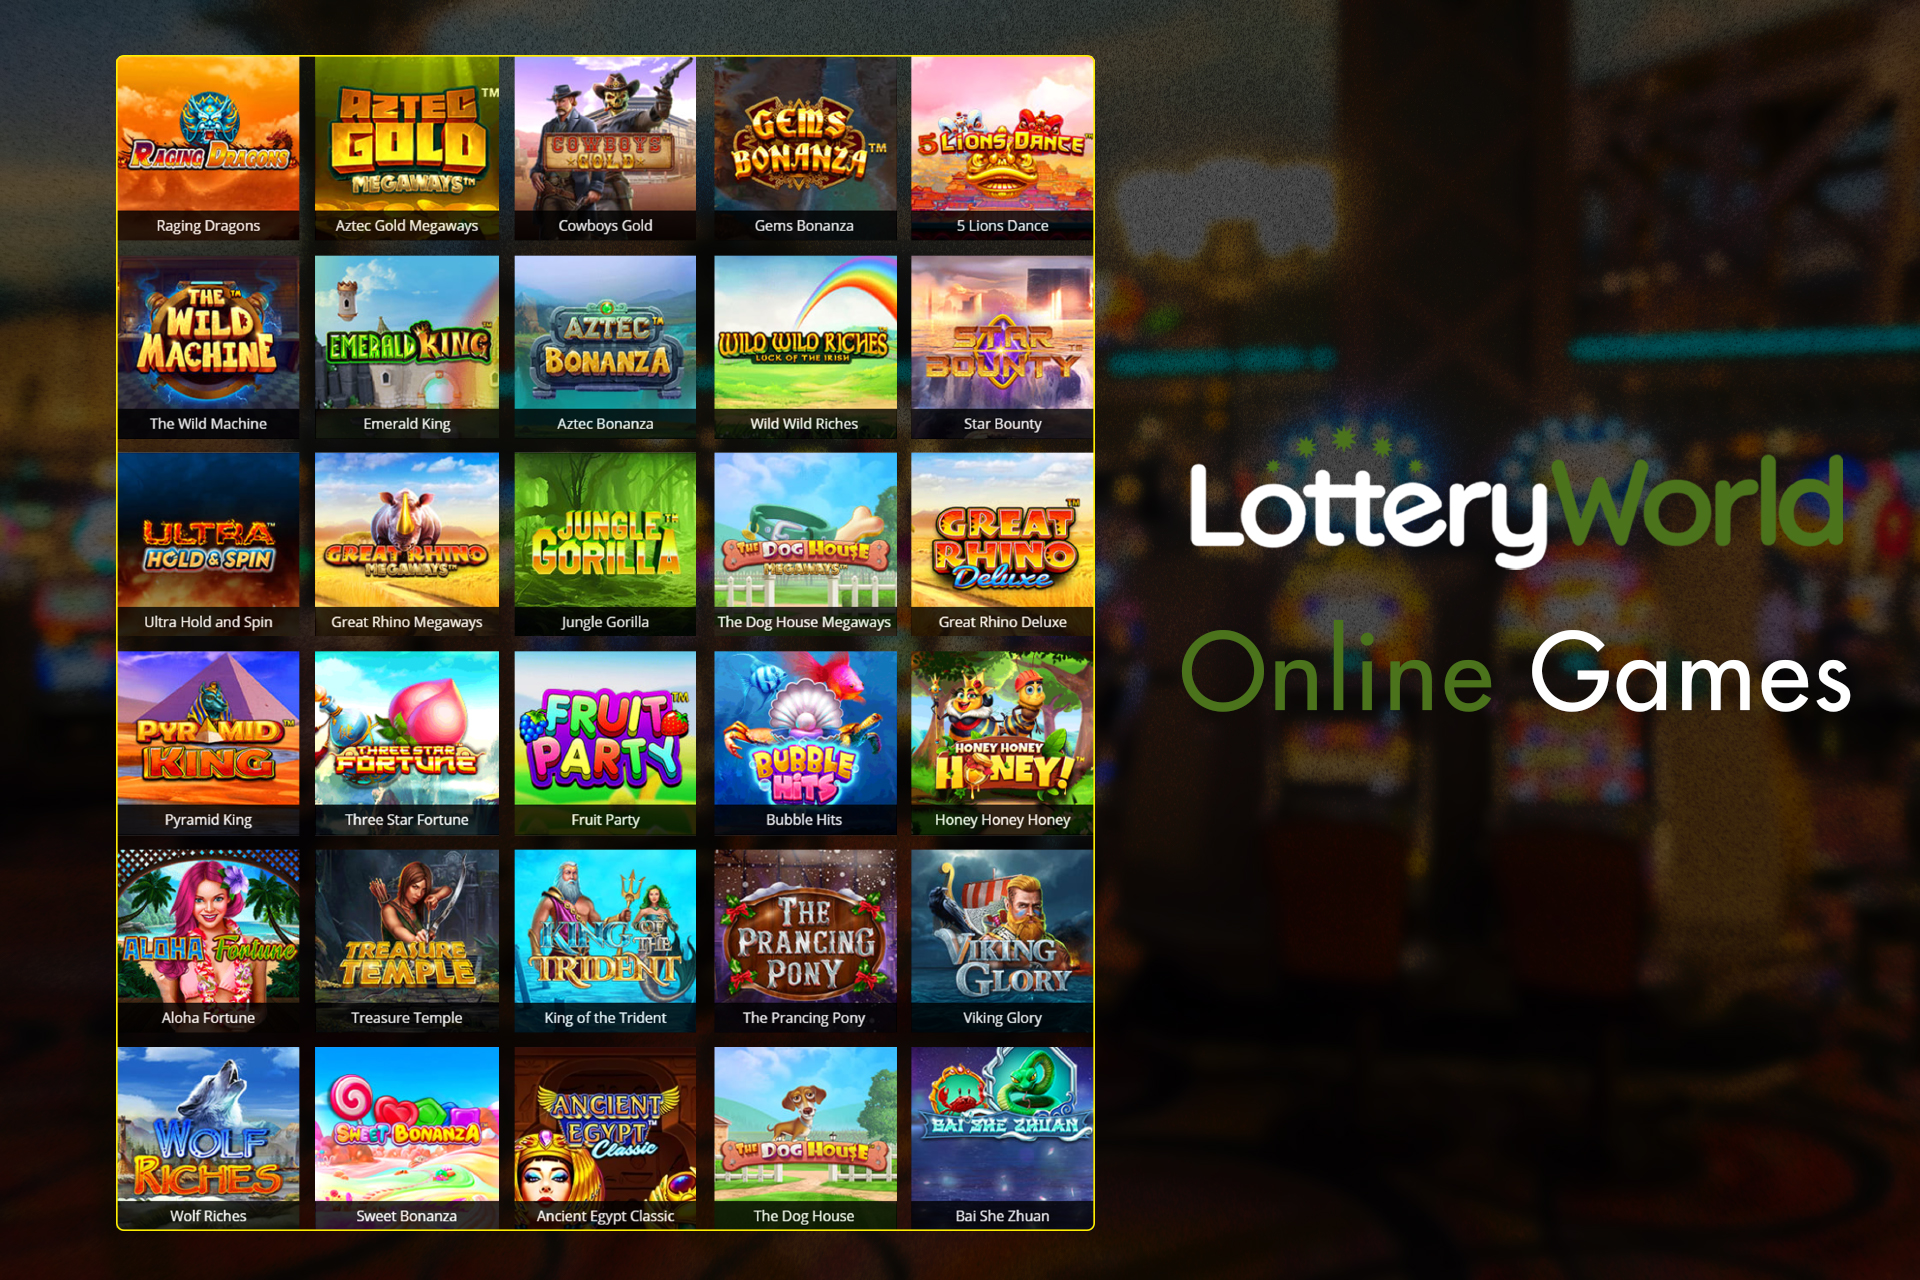 You can also check your fortune in the section of games playing online slots.